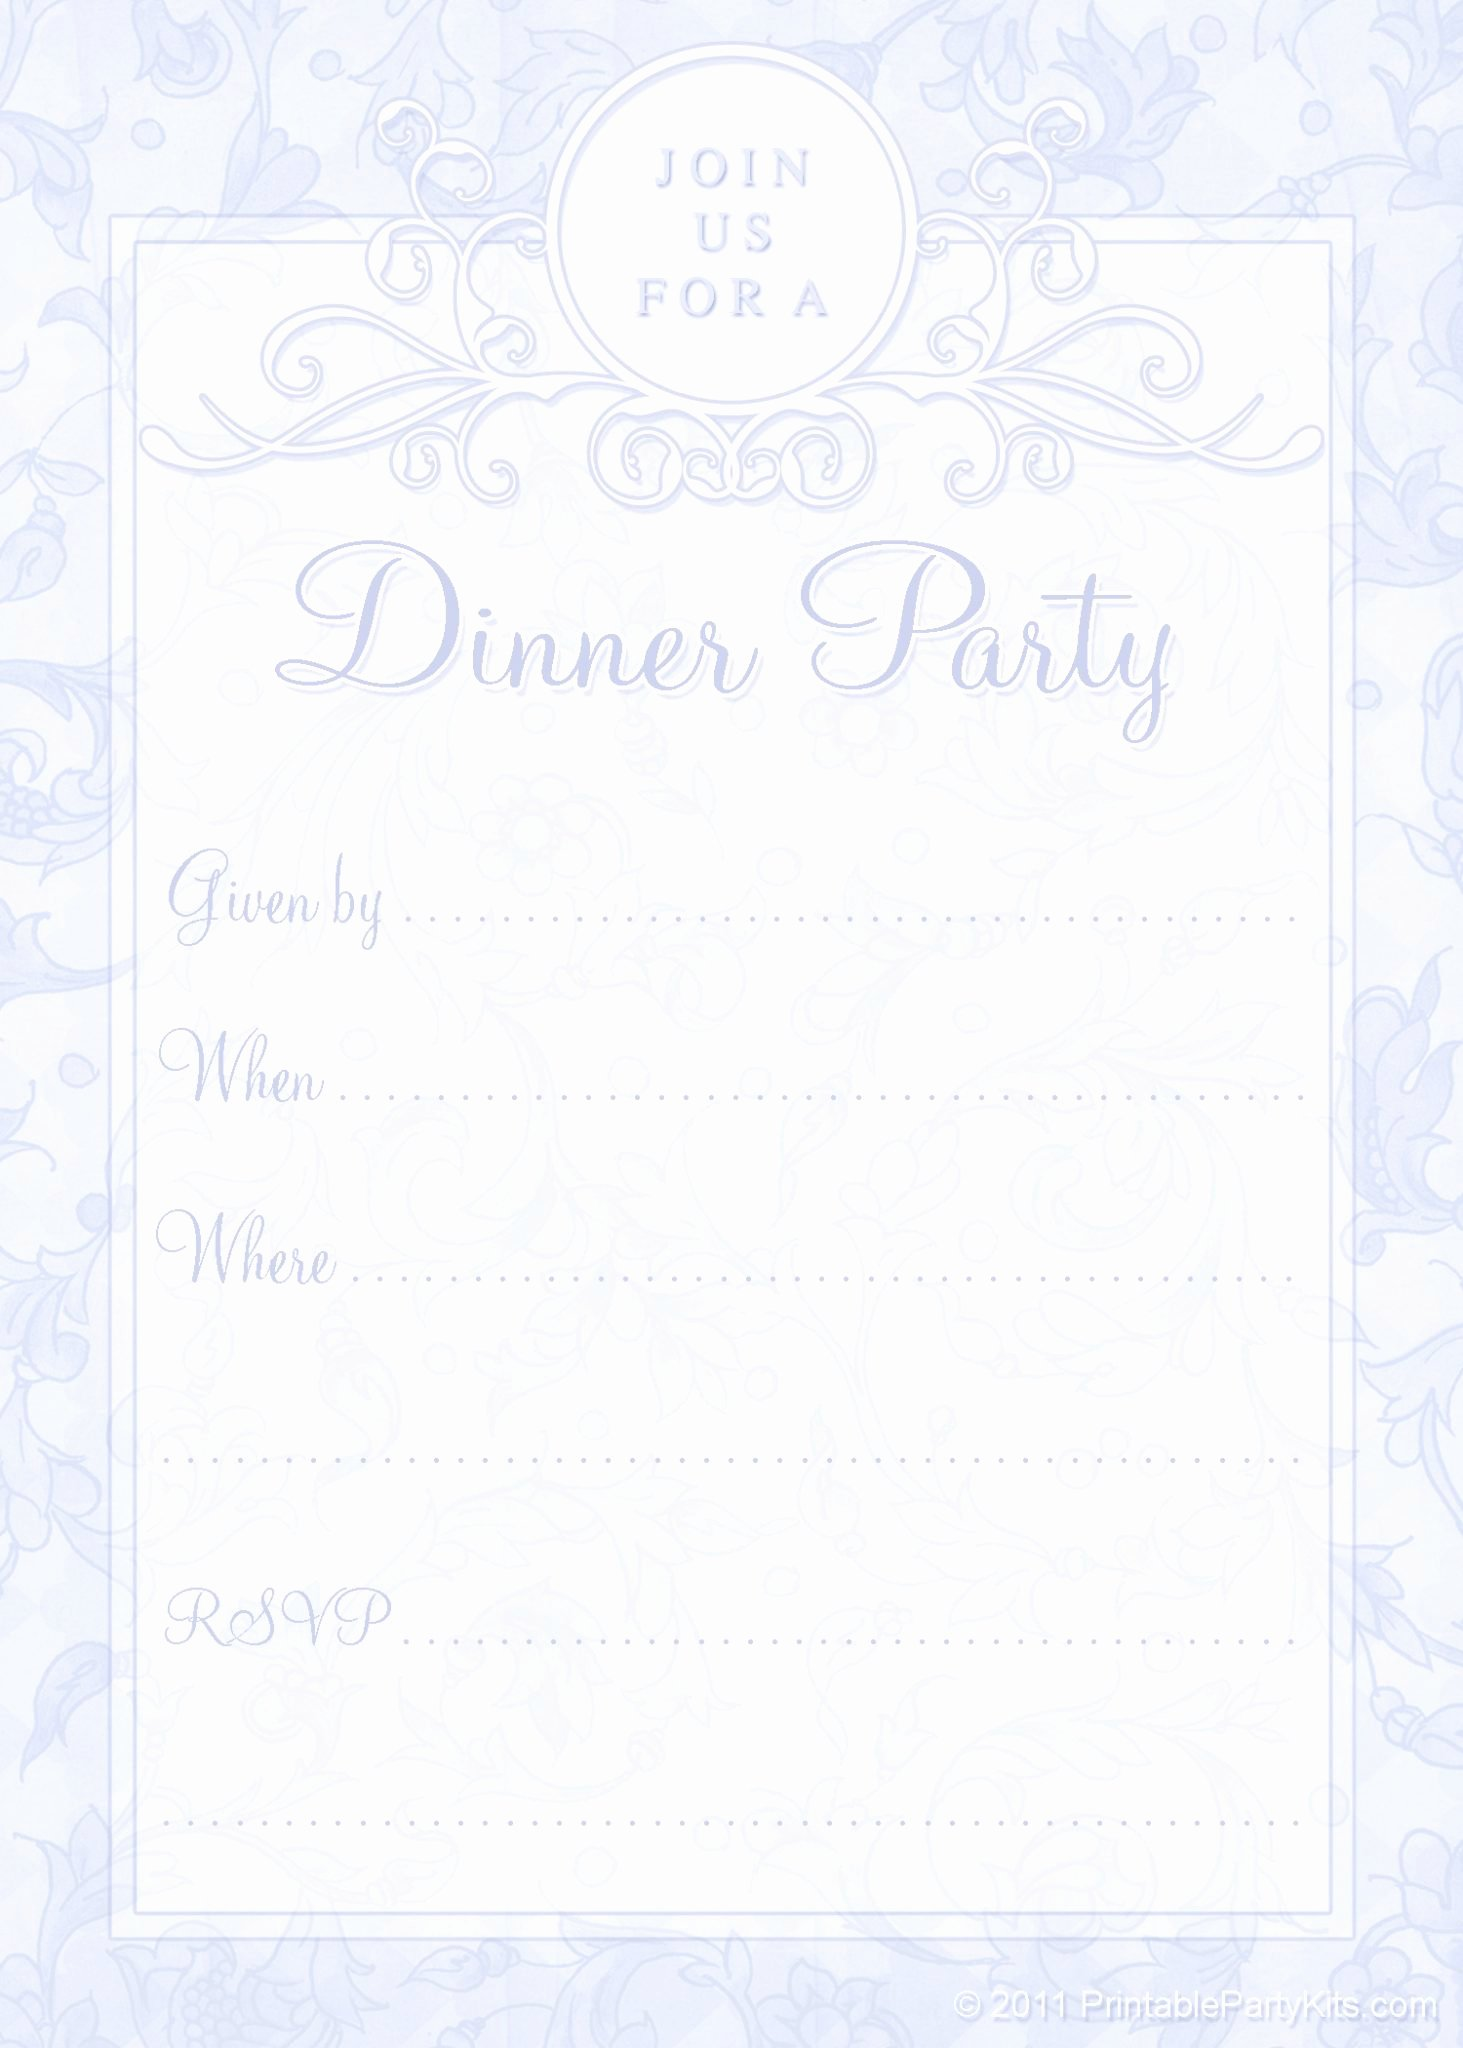 Dinner Invitation Template Free Printable Beautiful Free Printable Dinner Party Invites Printable Party Kits